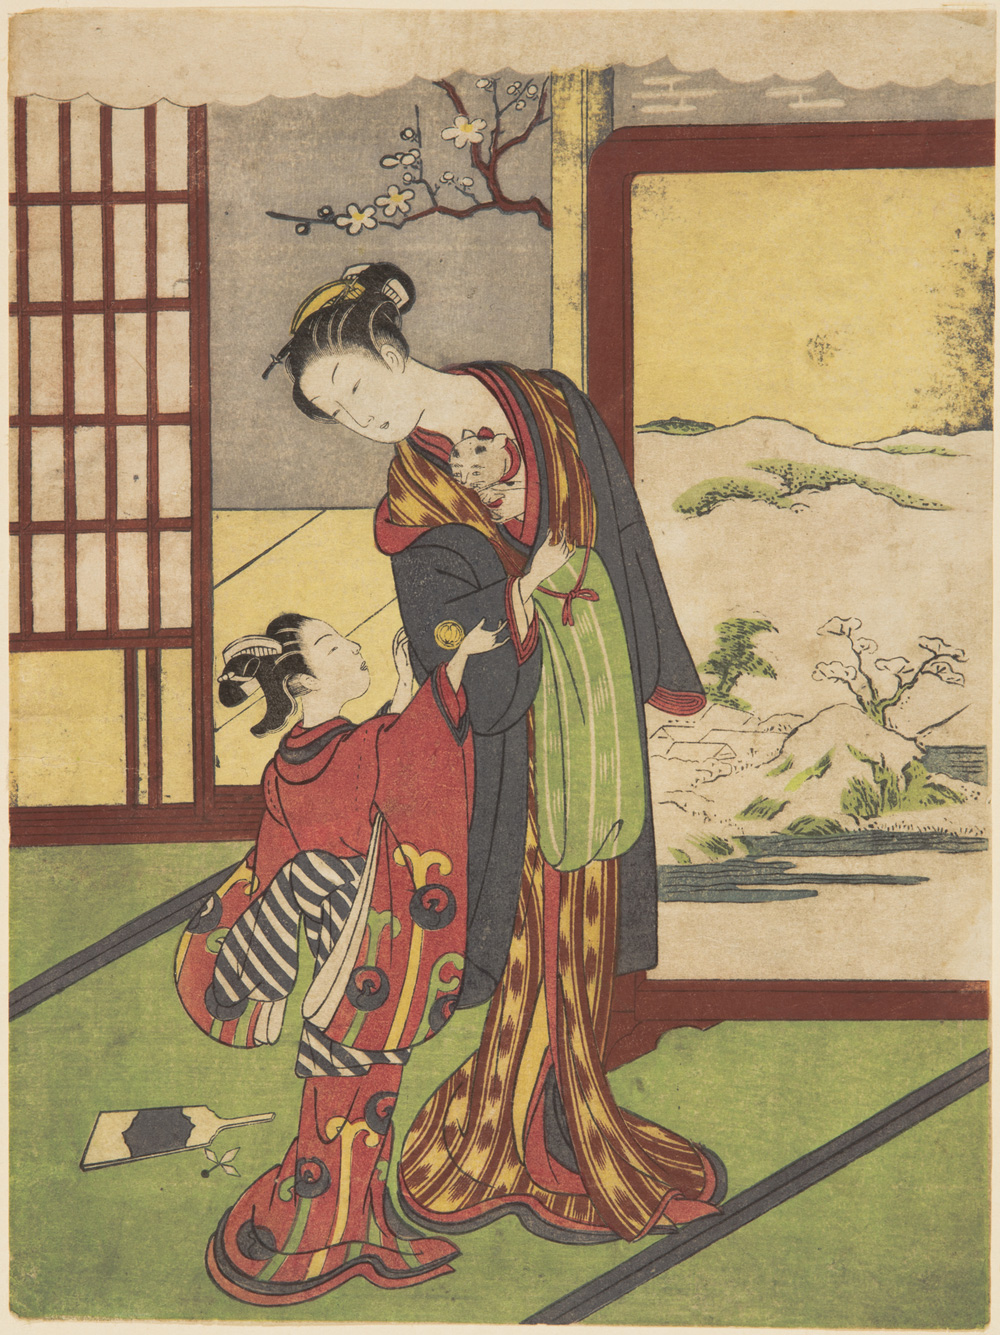 Japanese print of a woman and a child dressed in traditional clothes, the child reaches up to a kitten the woman holds in her kimono, we see a landscape through the door behind them.